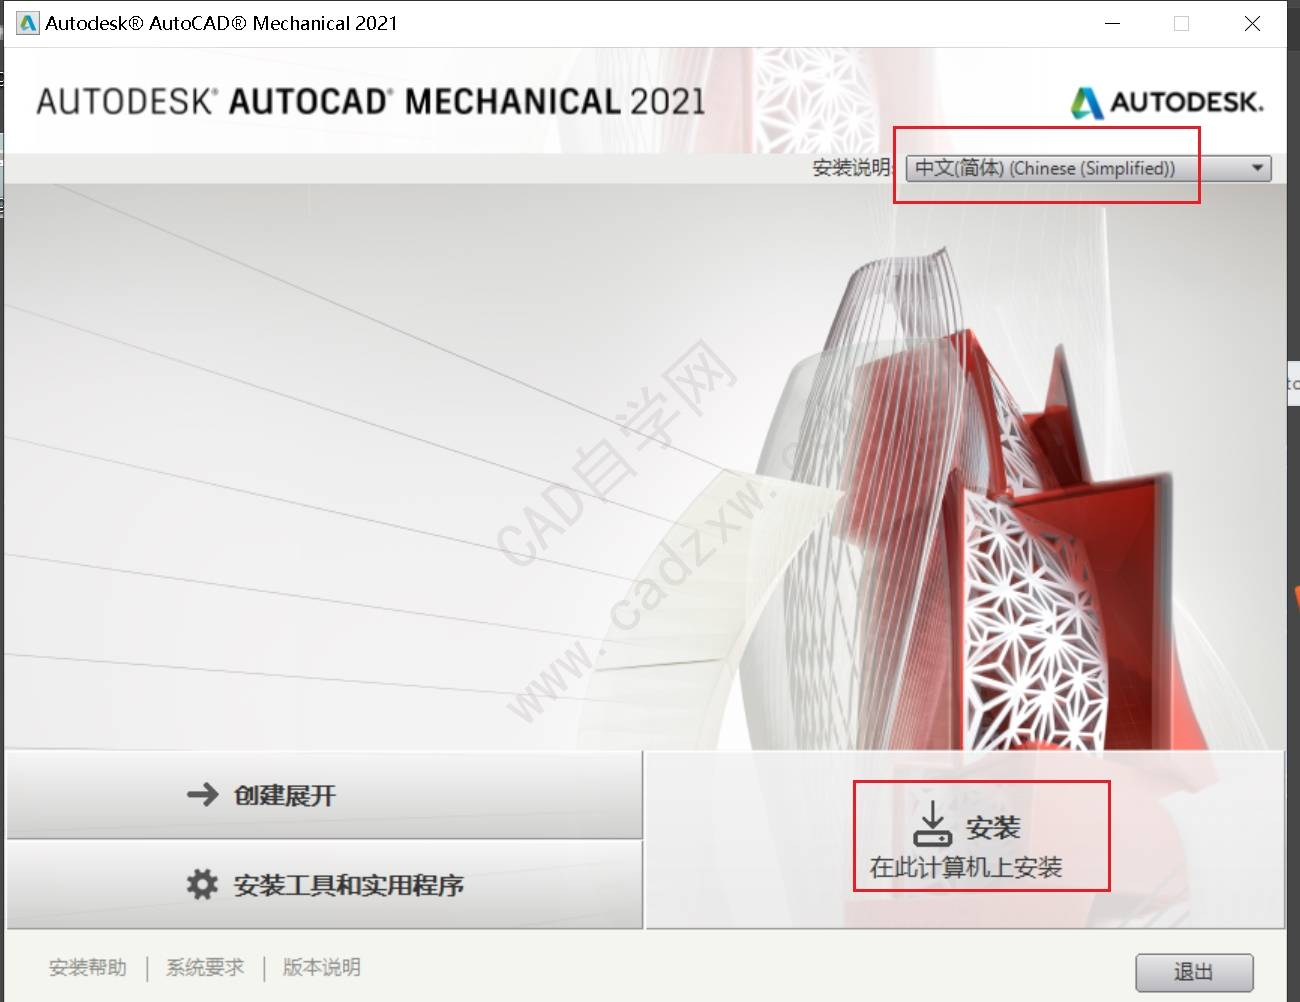 AutoCAD2021 Mechanical 机械版安装破解教程